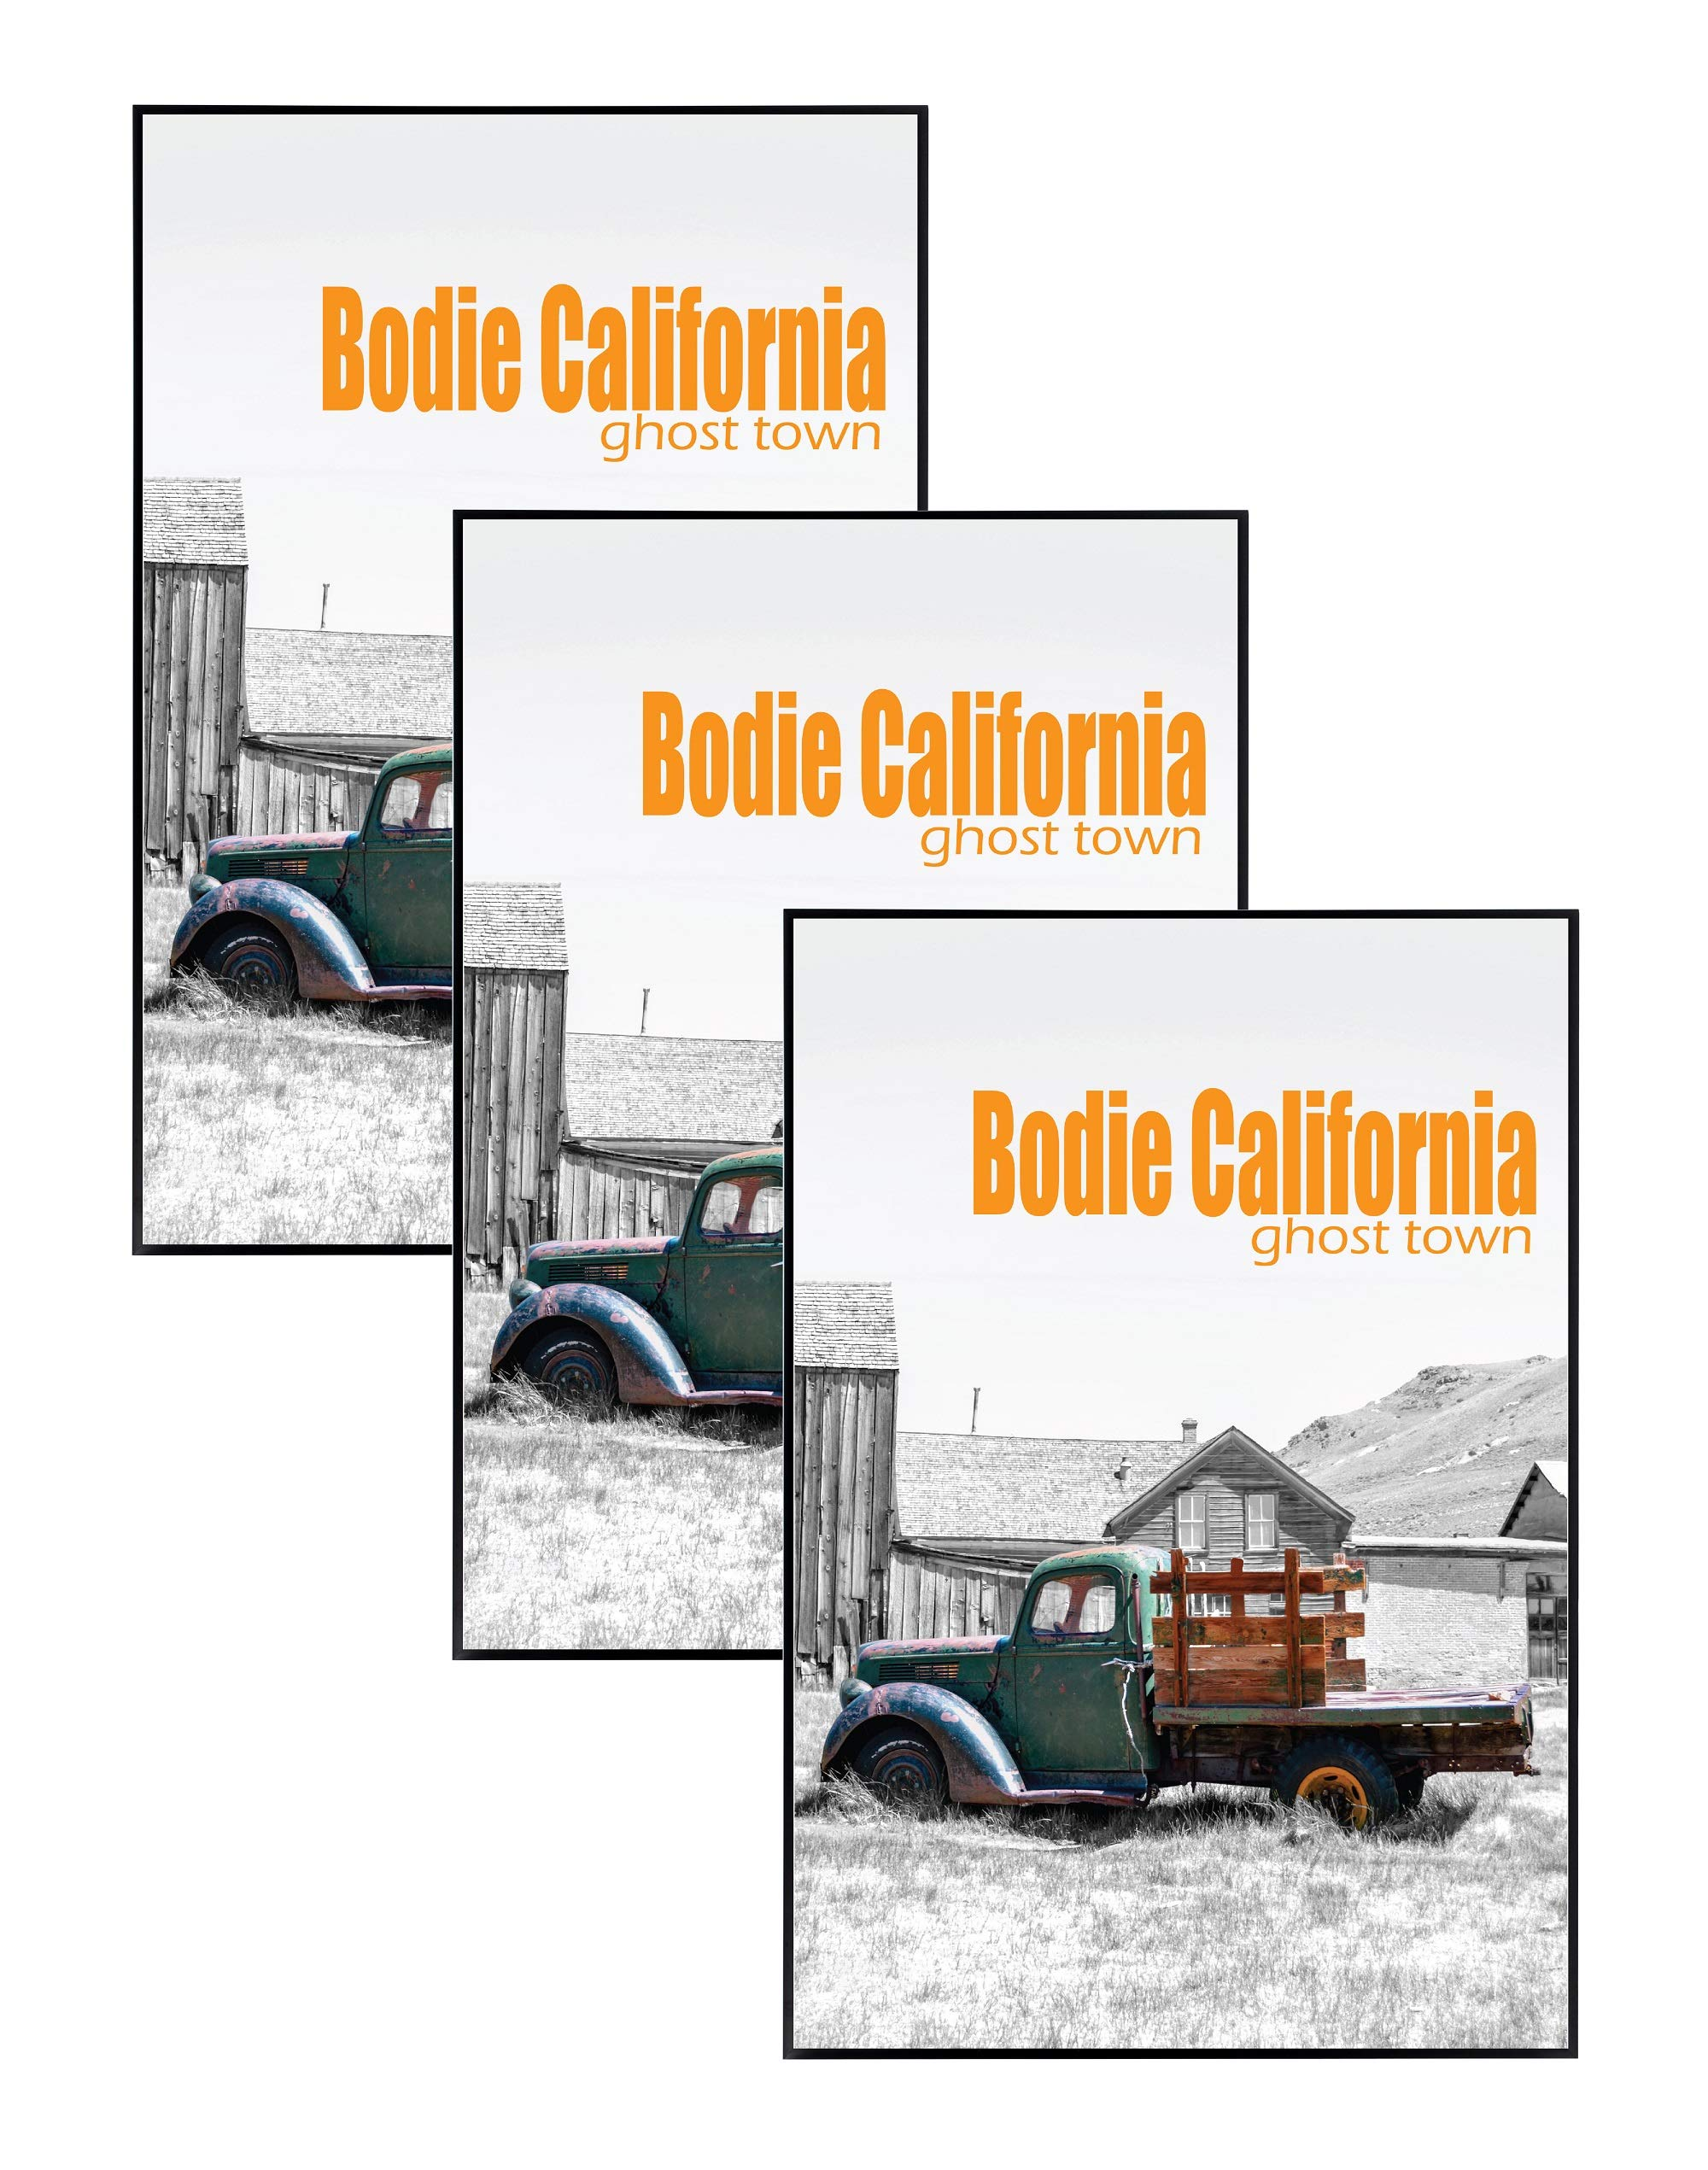 Golden State Art Set of Three, 13x19 Aluminum Black Photo Frame with Plexi-Glass - Swivel Tabs, Sawtooth Hangers, Spring Clips - Metal Wall Poster Frame Collection (3)